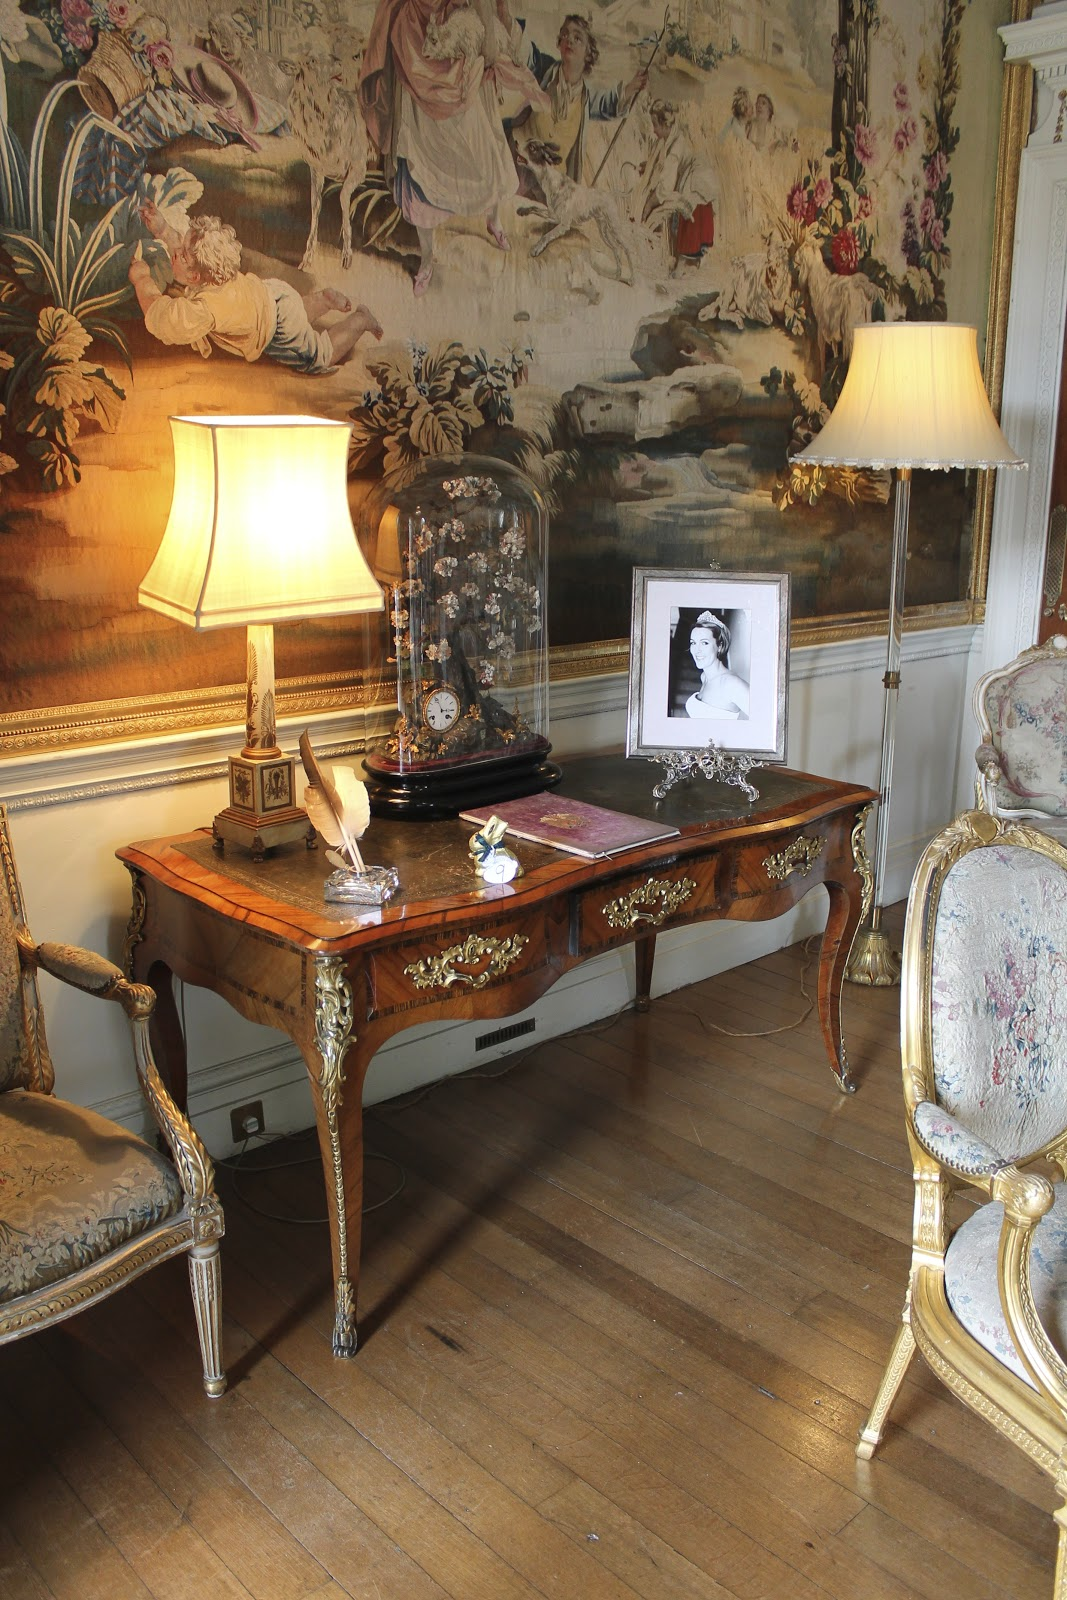 Downton Abbey Drawing Room: My Notting Hill: My Visit Inside Downton Abbey